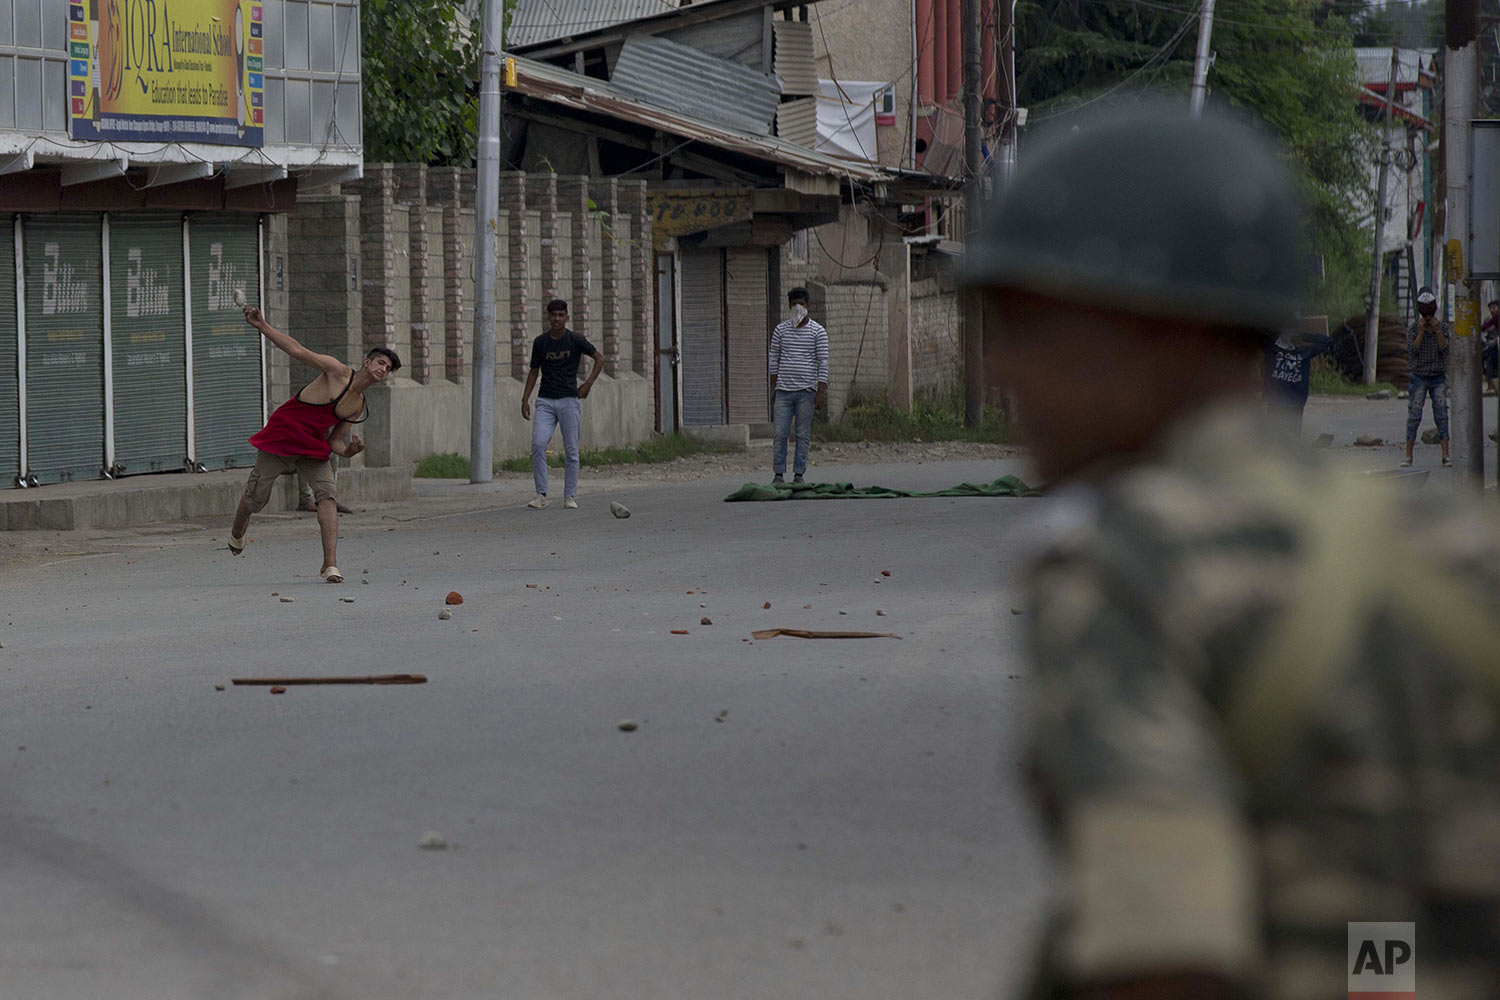 Kashmiri Muslim protesters throw stones at Indian paramilitary soldiers during curfew like restrictions in Srinagar, India, Friday, Aug. 16, 2019. (AP Photo/Dar Yasin)